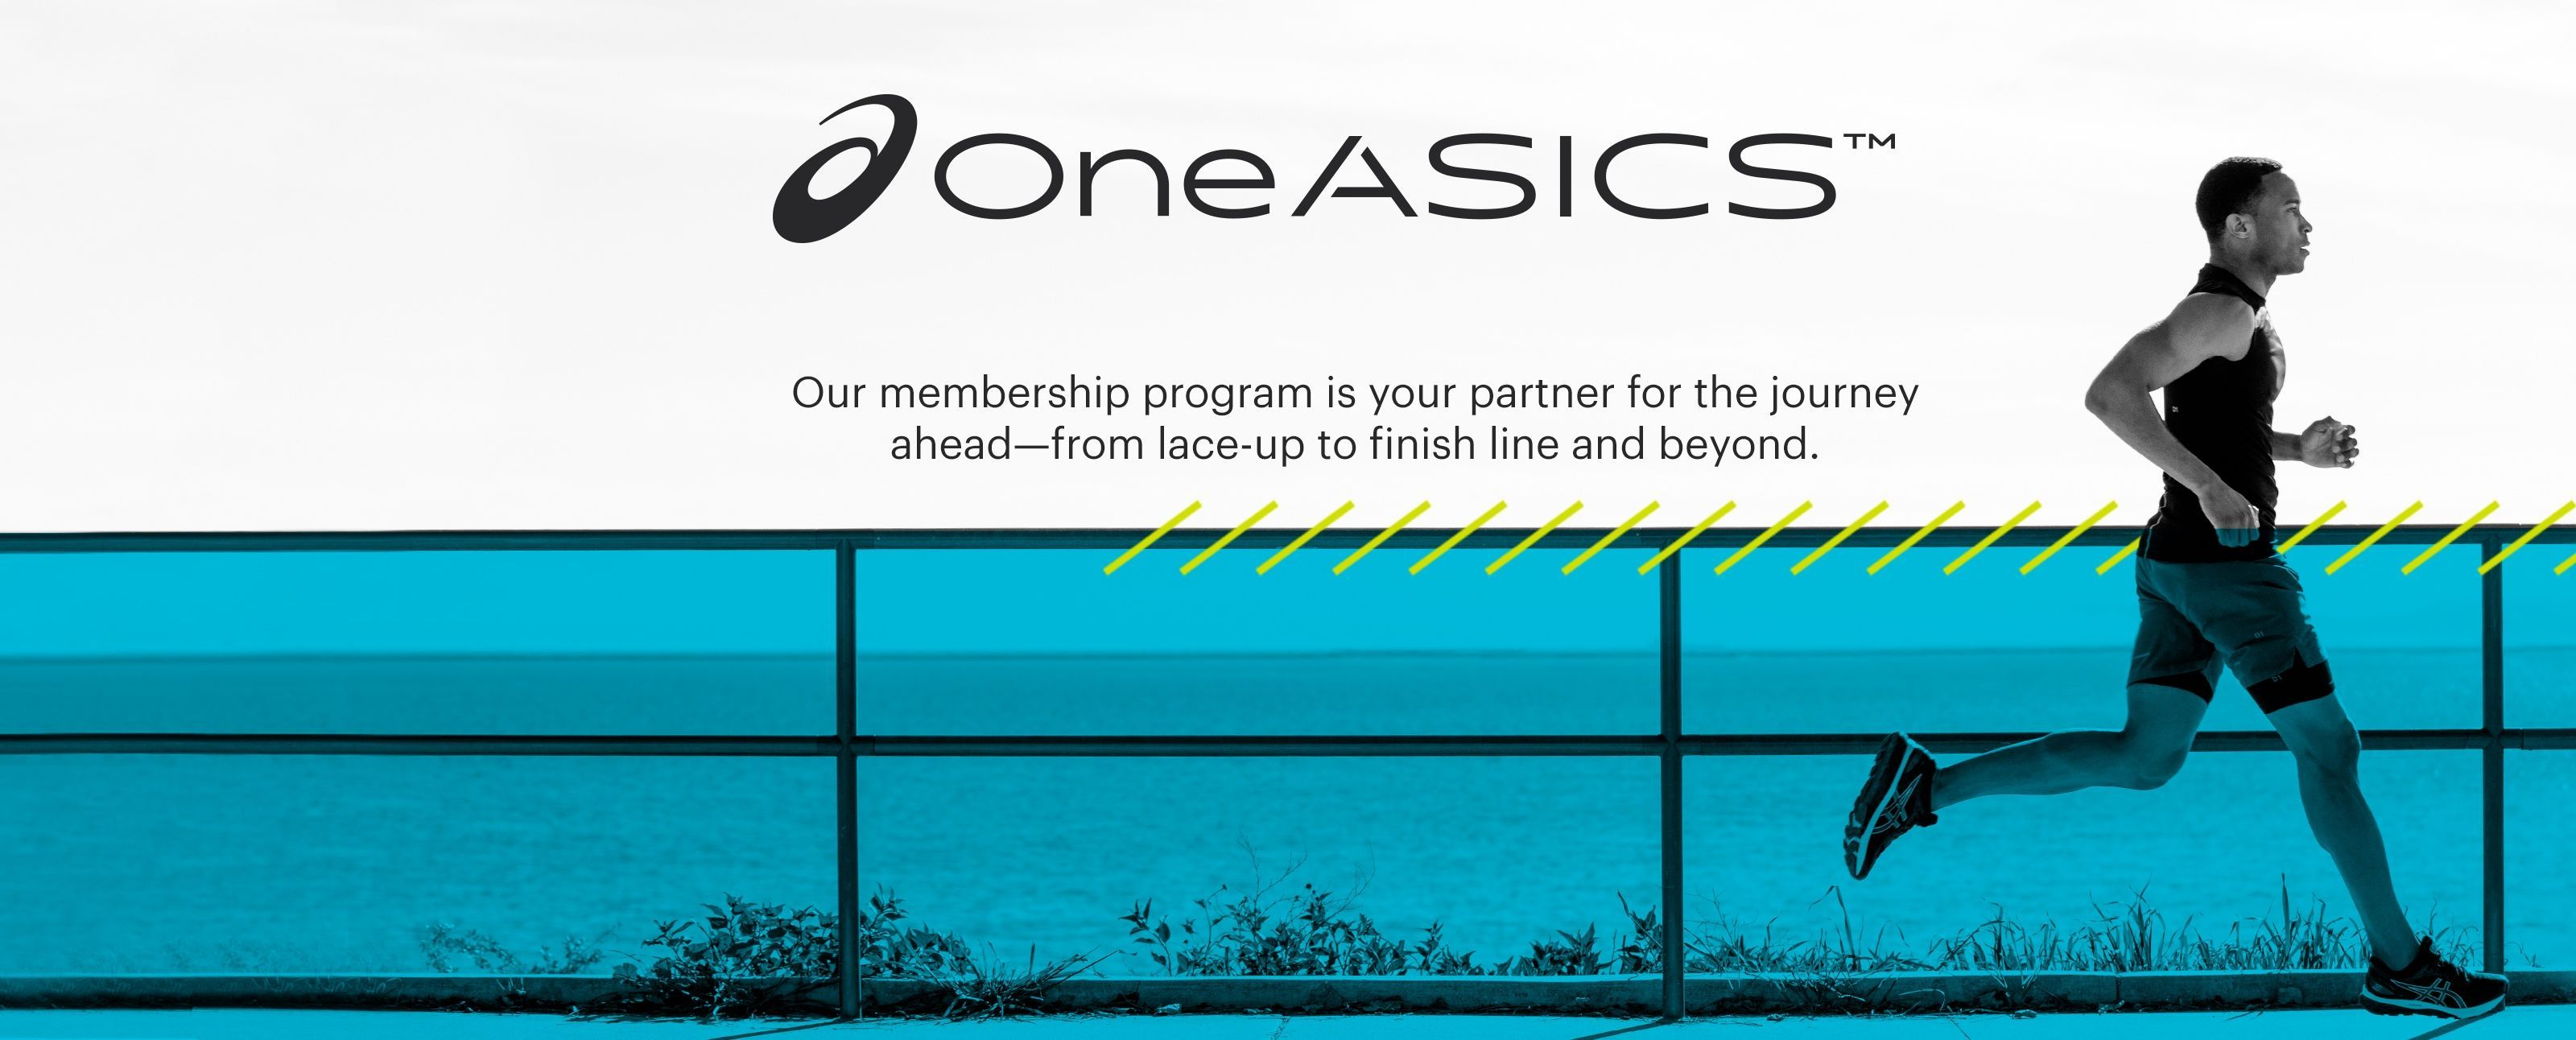 OneASICS? (logo)  Our membership program is your partner for the journey ahead—from lace-up to finish line and beyond.